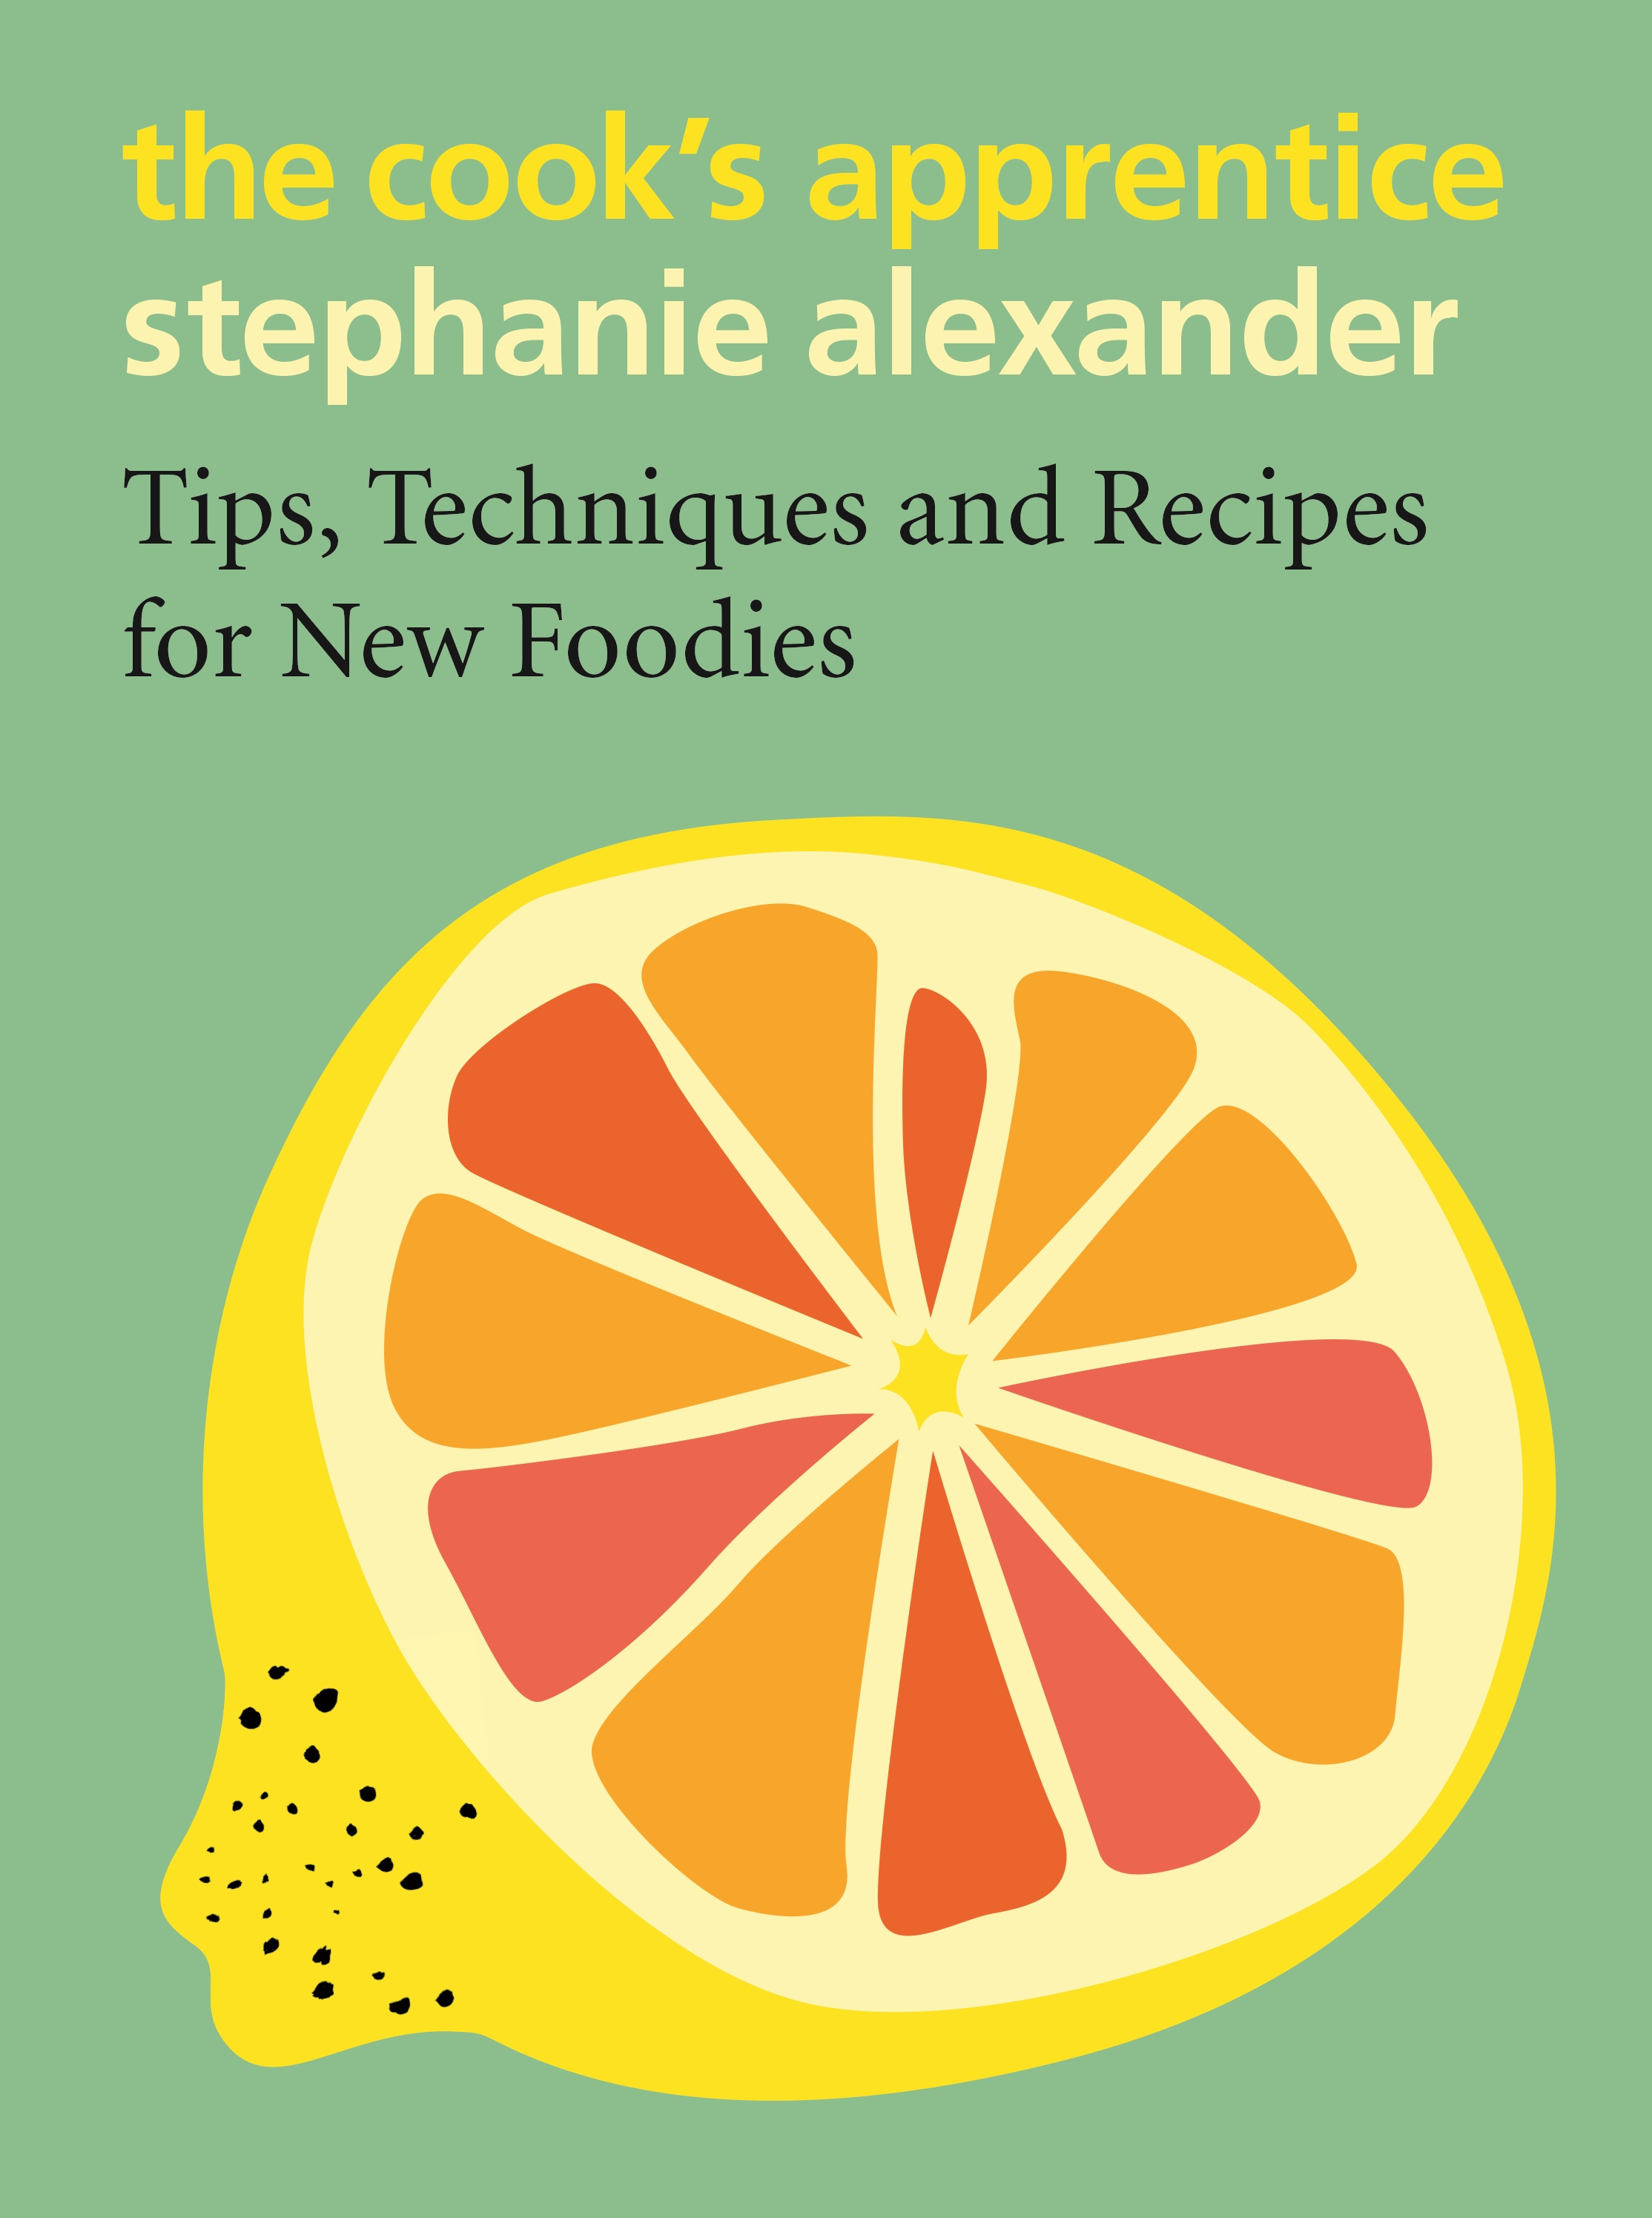 Cook's Apprentice, The by Stephanie Alexander, ISBN: 9780143788485